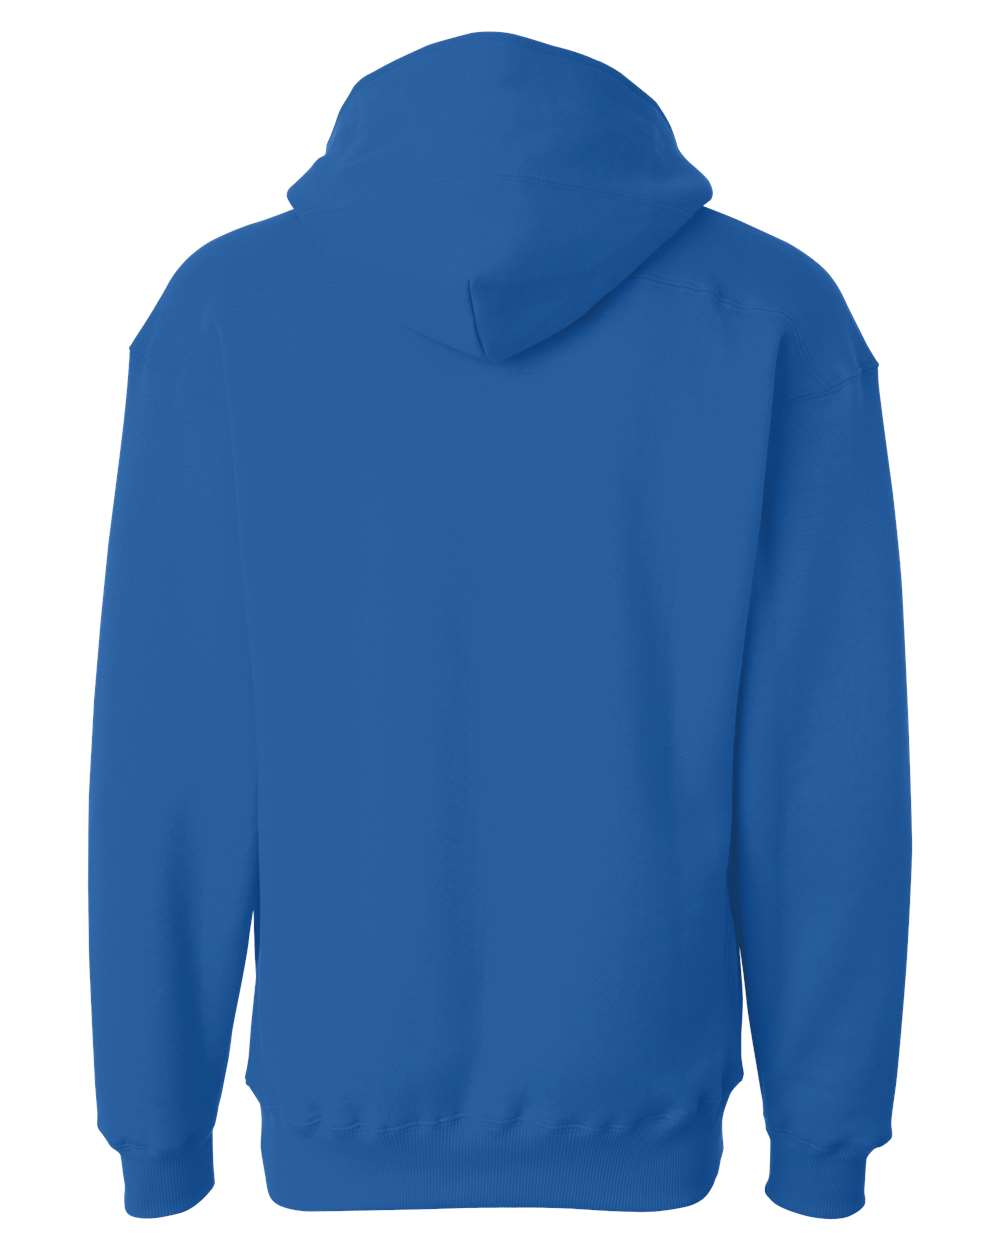 J-America-Mens-Blank-Sport-Lace-Hooded-Sweatshirt-8830-up-to-3XL thumbnail 25